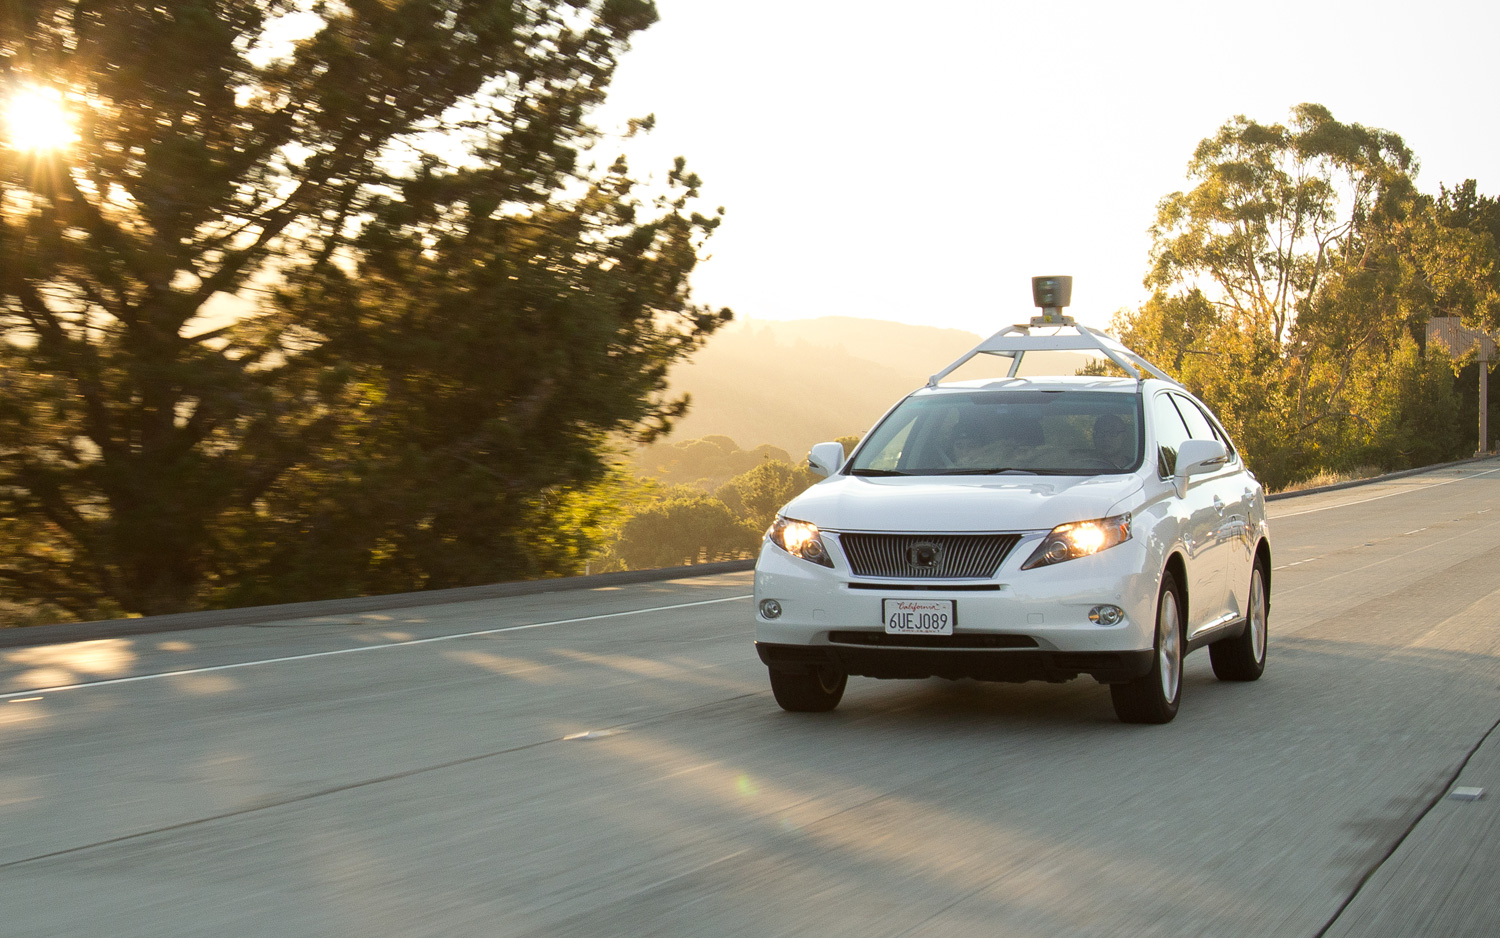 google-self-driving-teknocinnet (5)